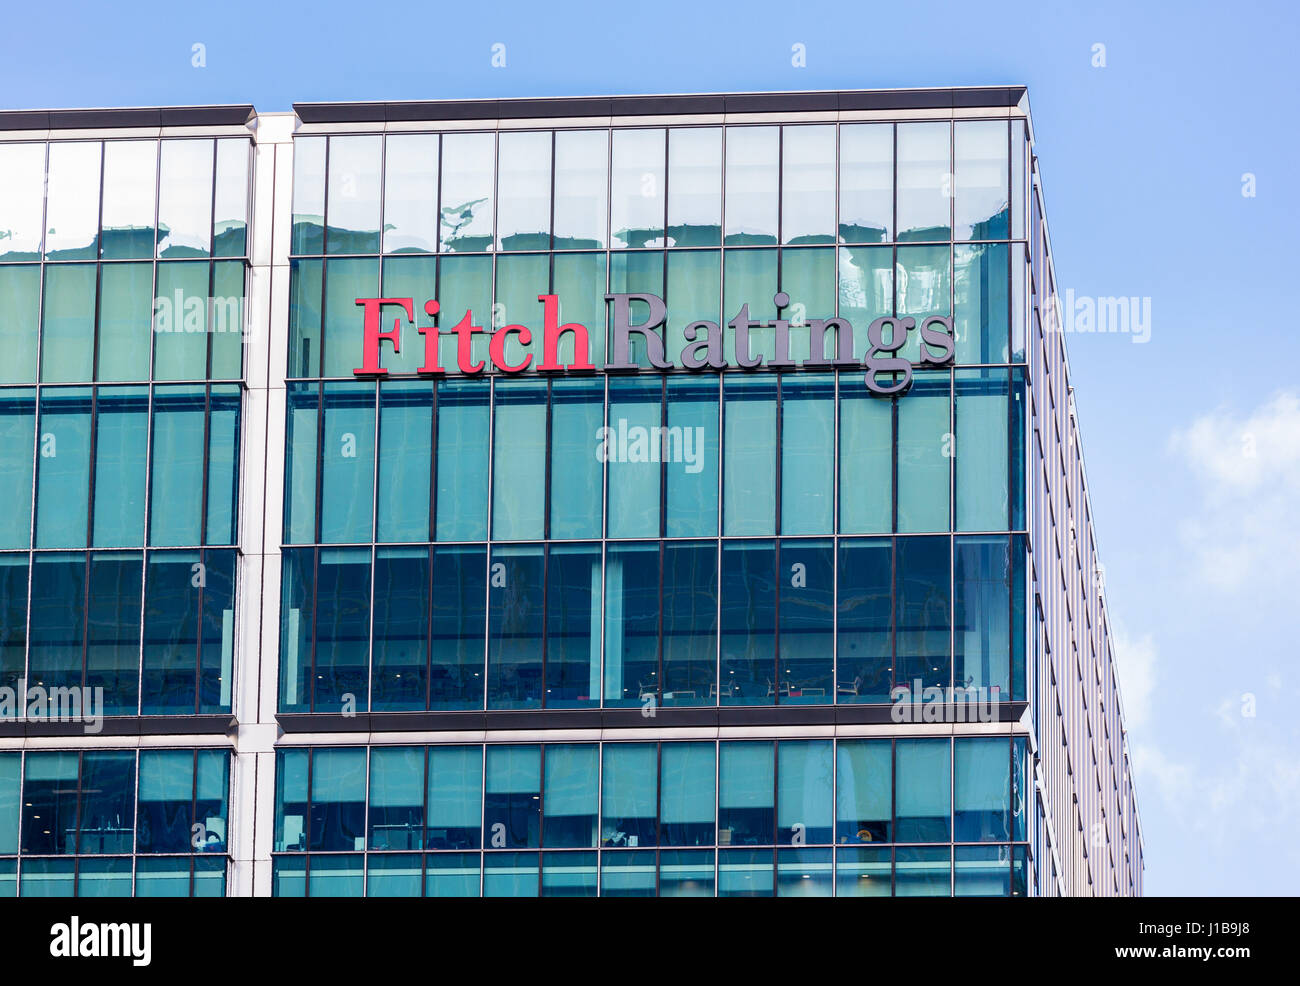 Fitch Ratings Agency logo on their building in Canary Wharf, Docklands, London, UK - Stock Image